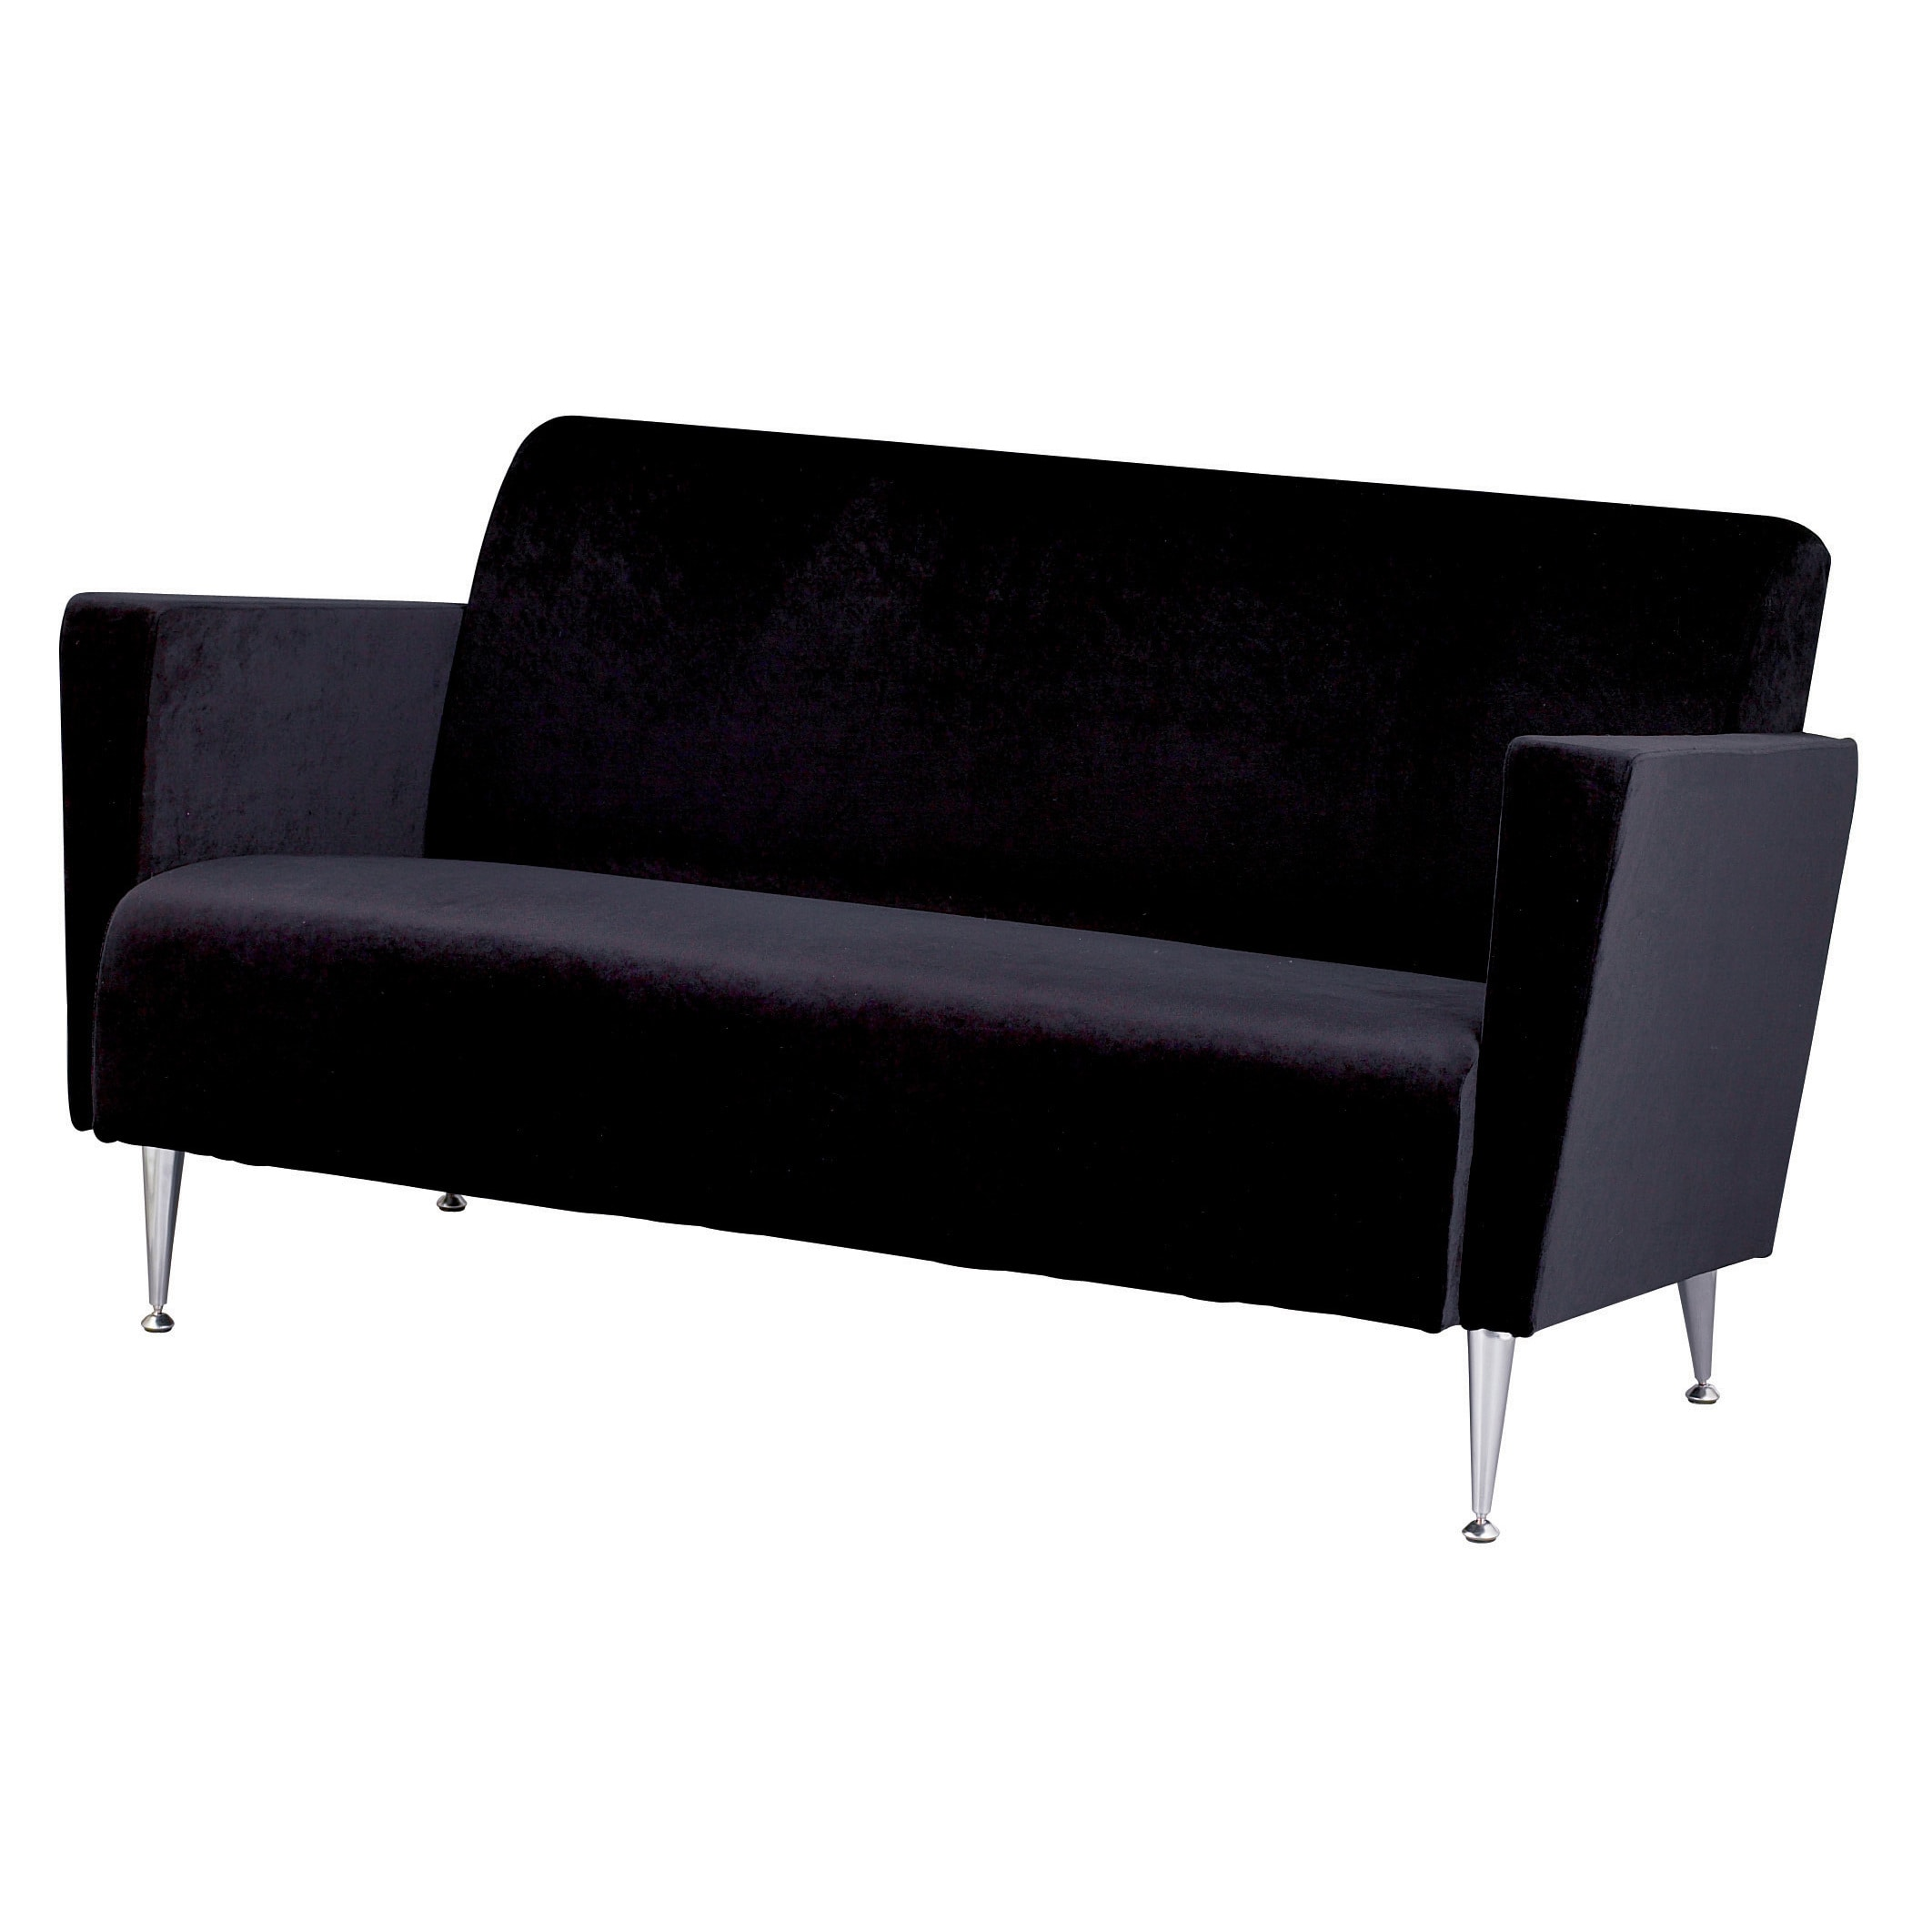 Made Sofa Velvet Memphis Velvet Chrome Sofa Chair